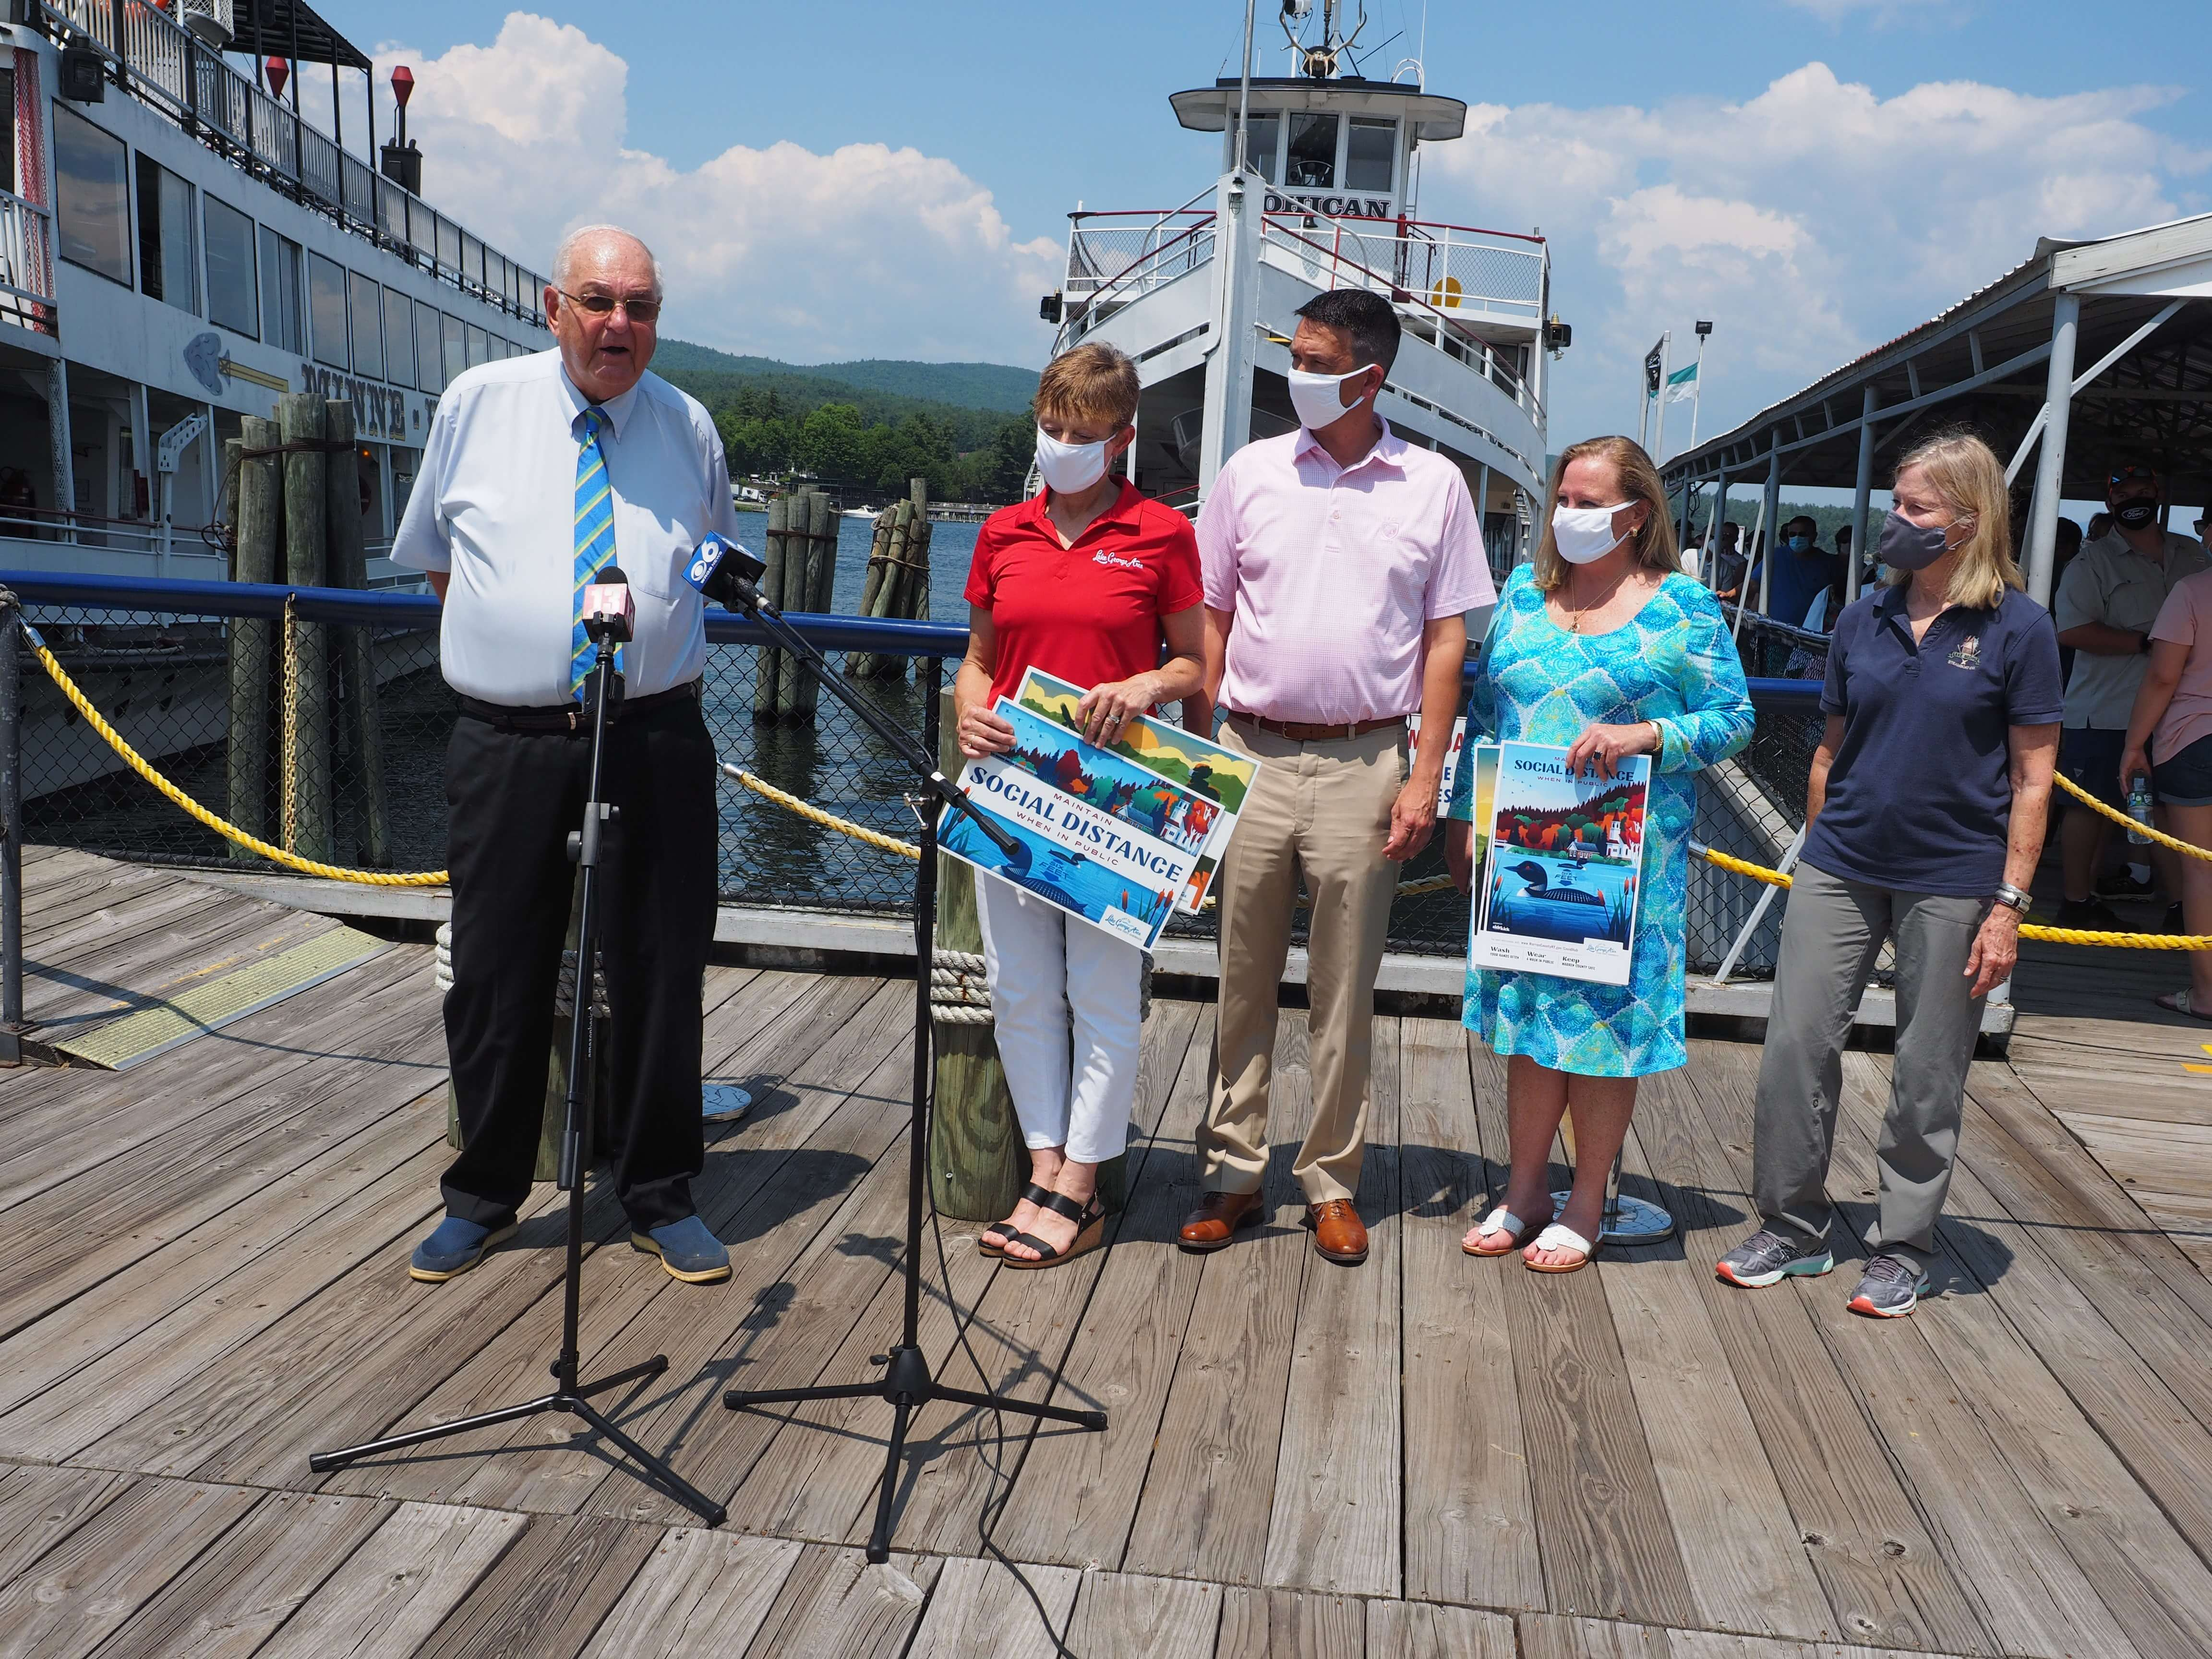 Lake George Area Prepares for Independence Day with Safe Reopening of Attractions, Hiring Push